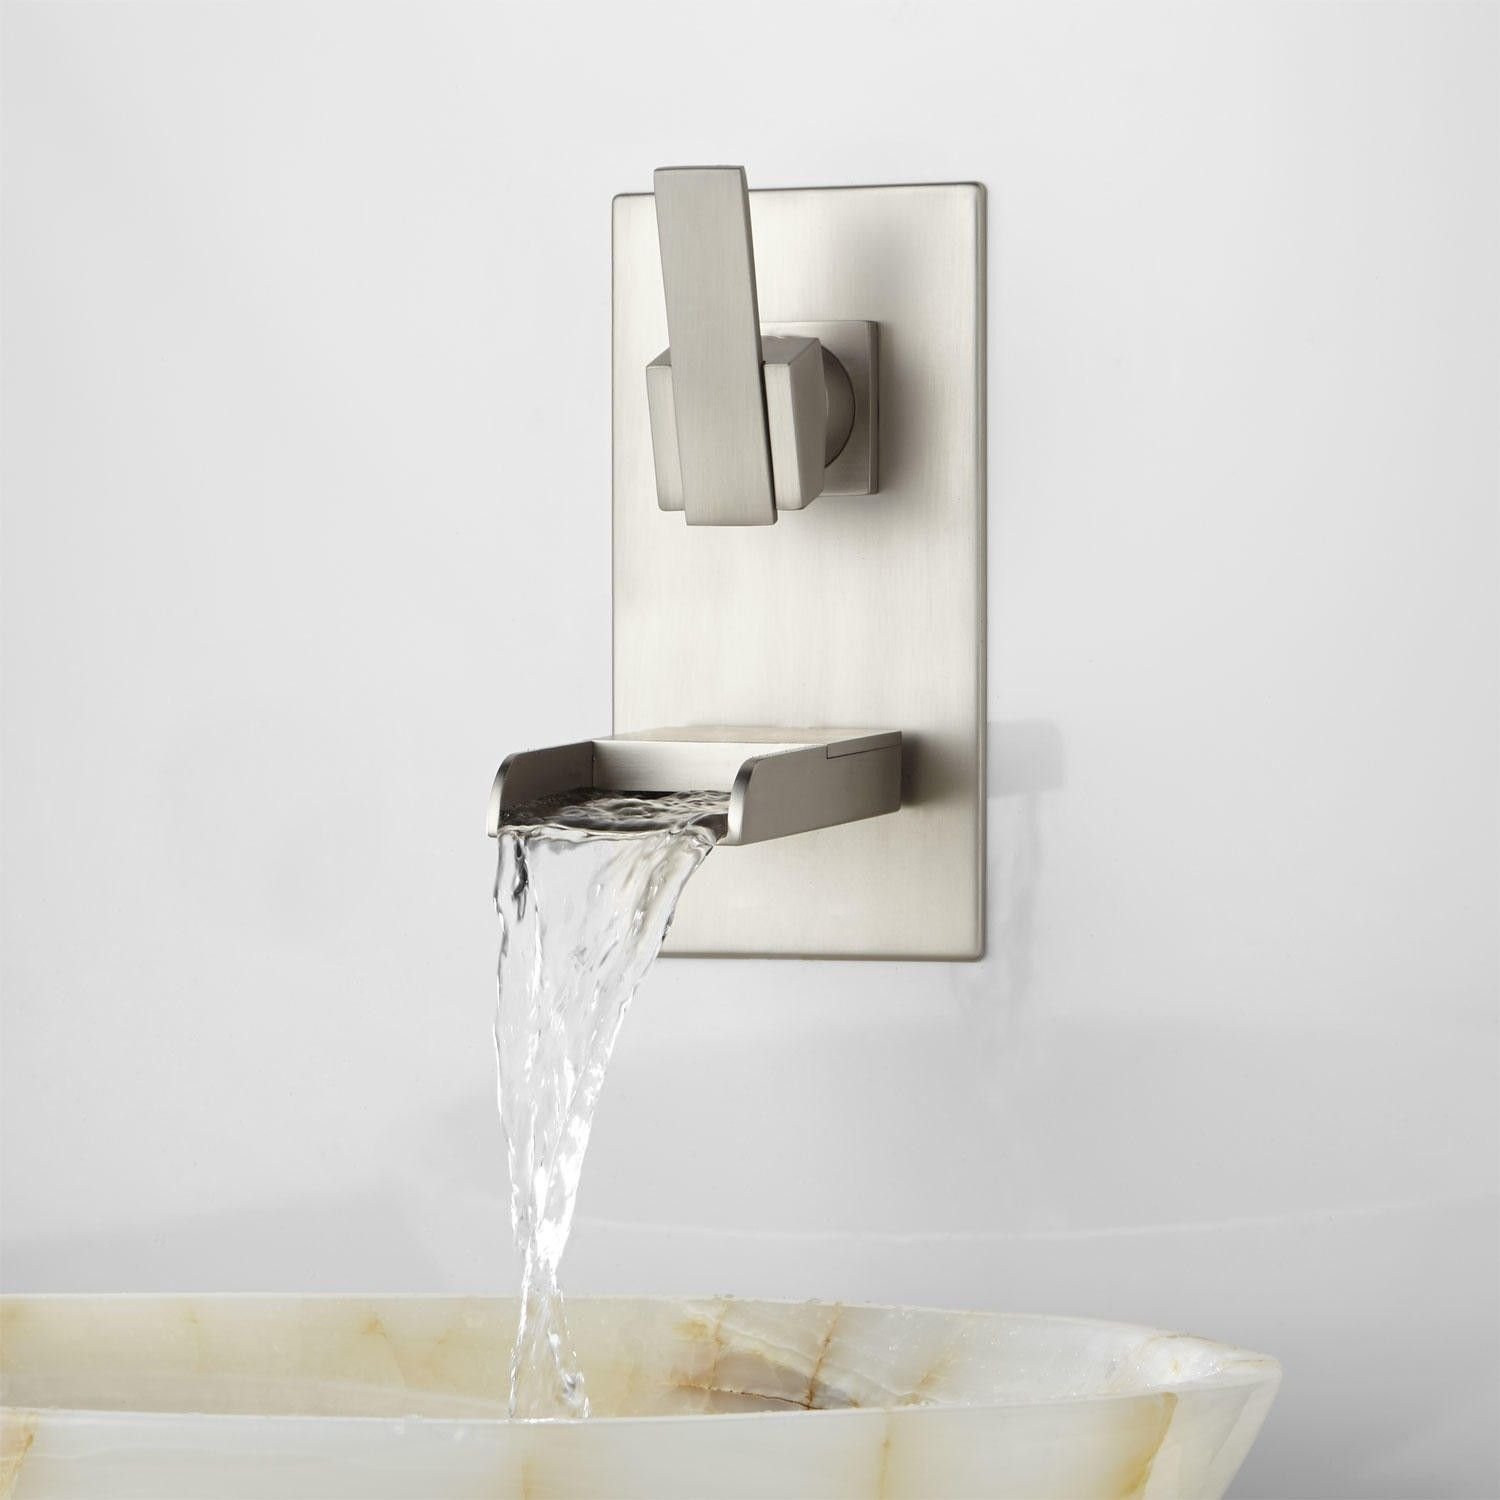 Willis Wall-Mount Bathroom Waterfall Faucet | Waterfall faucet, Wall ...